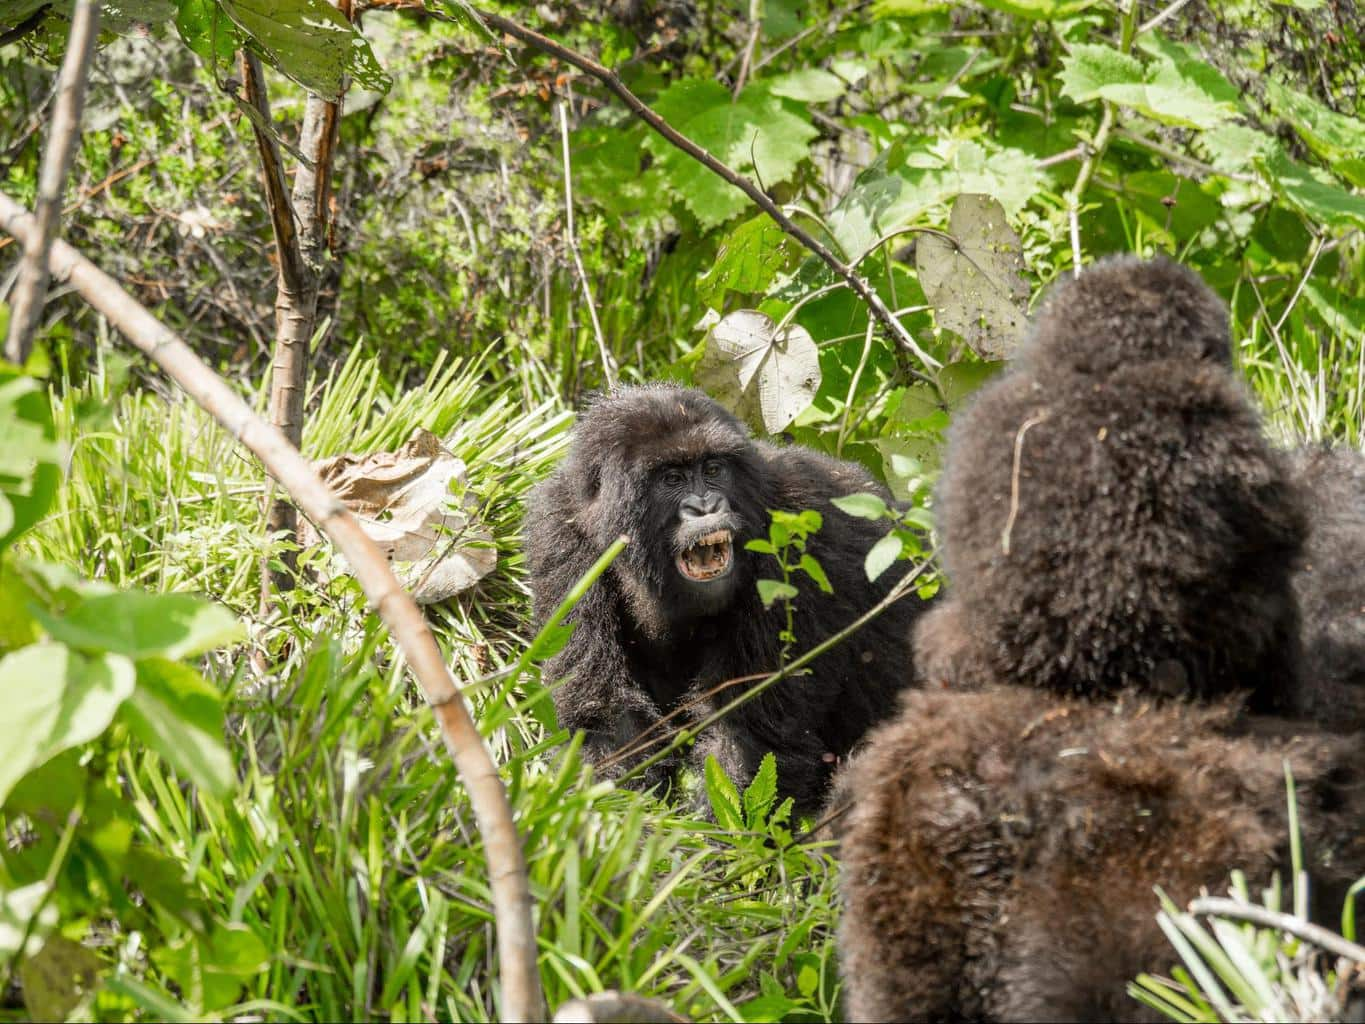 Female gorilla showing her teeth to the other female gorilla in the group